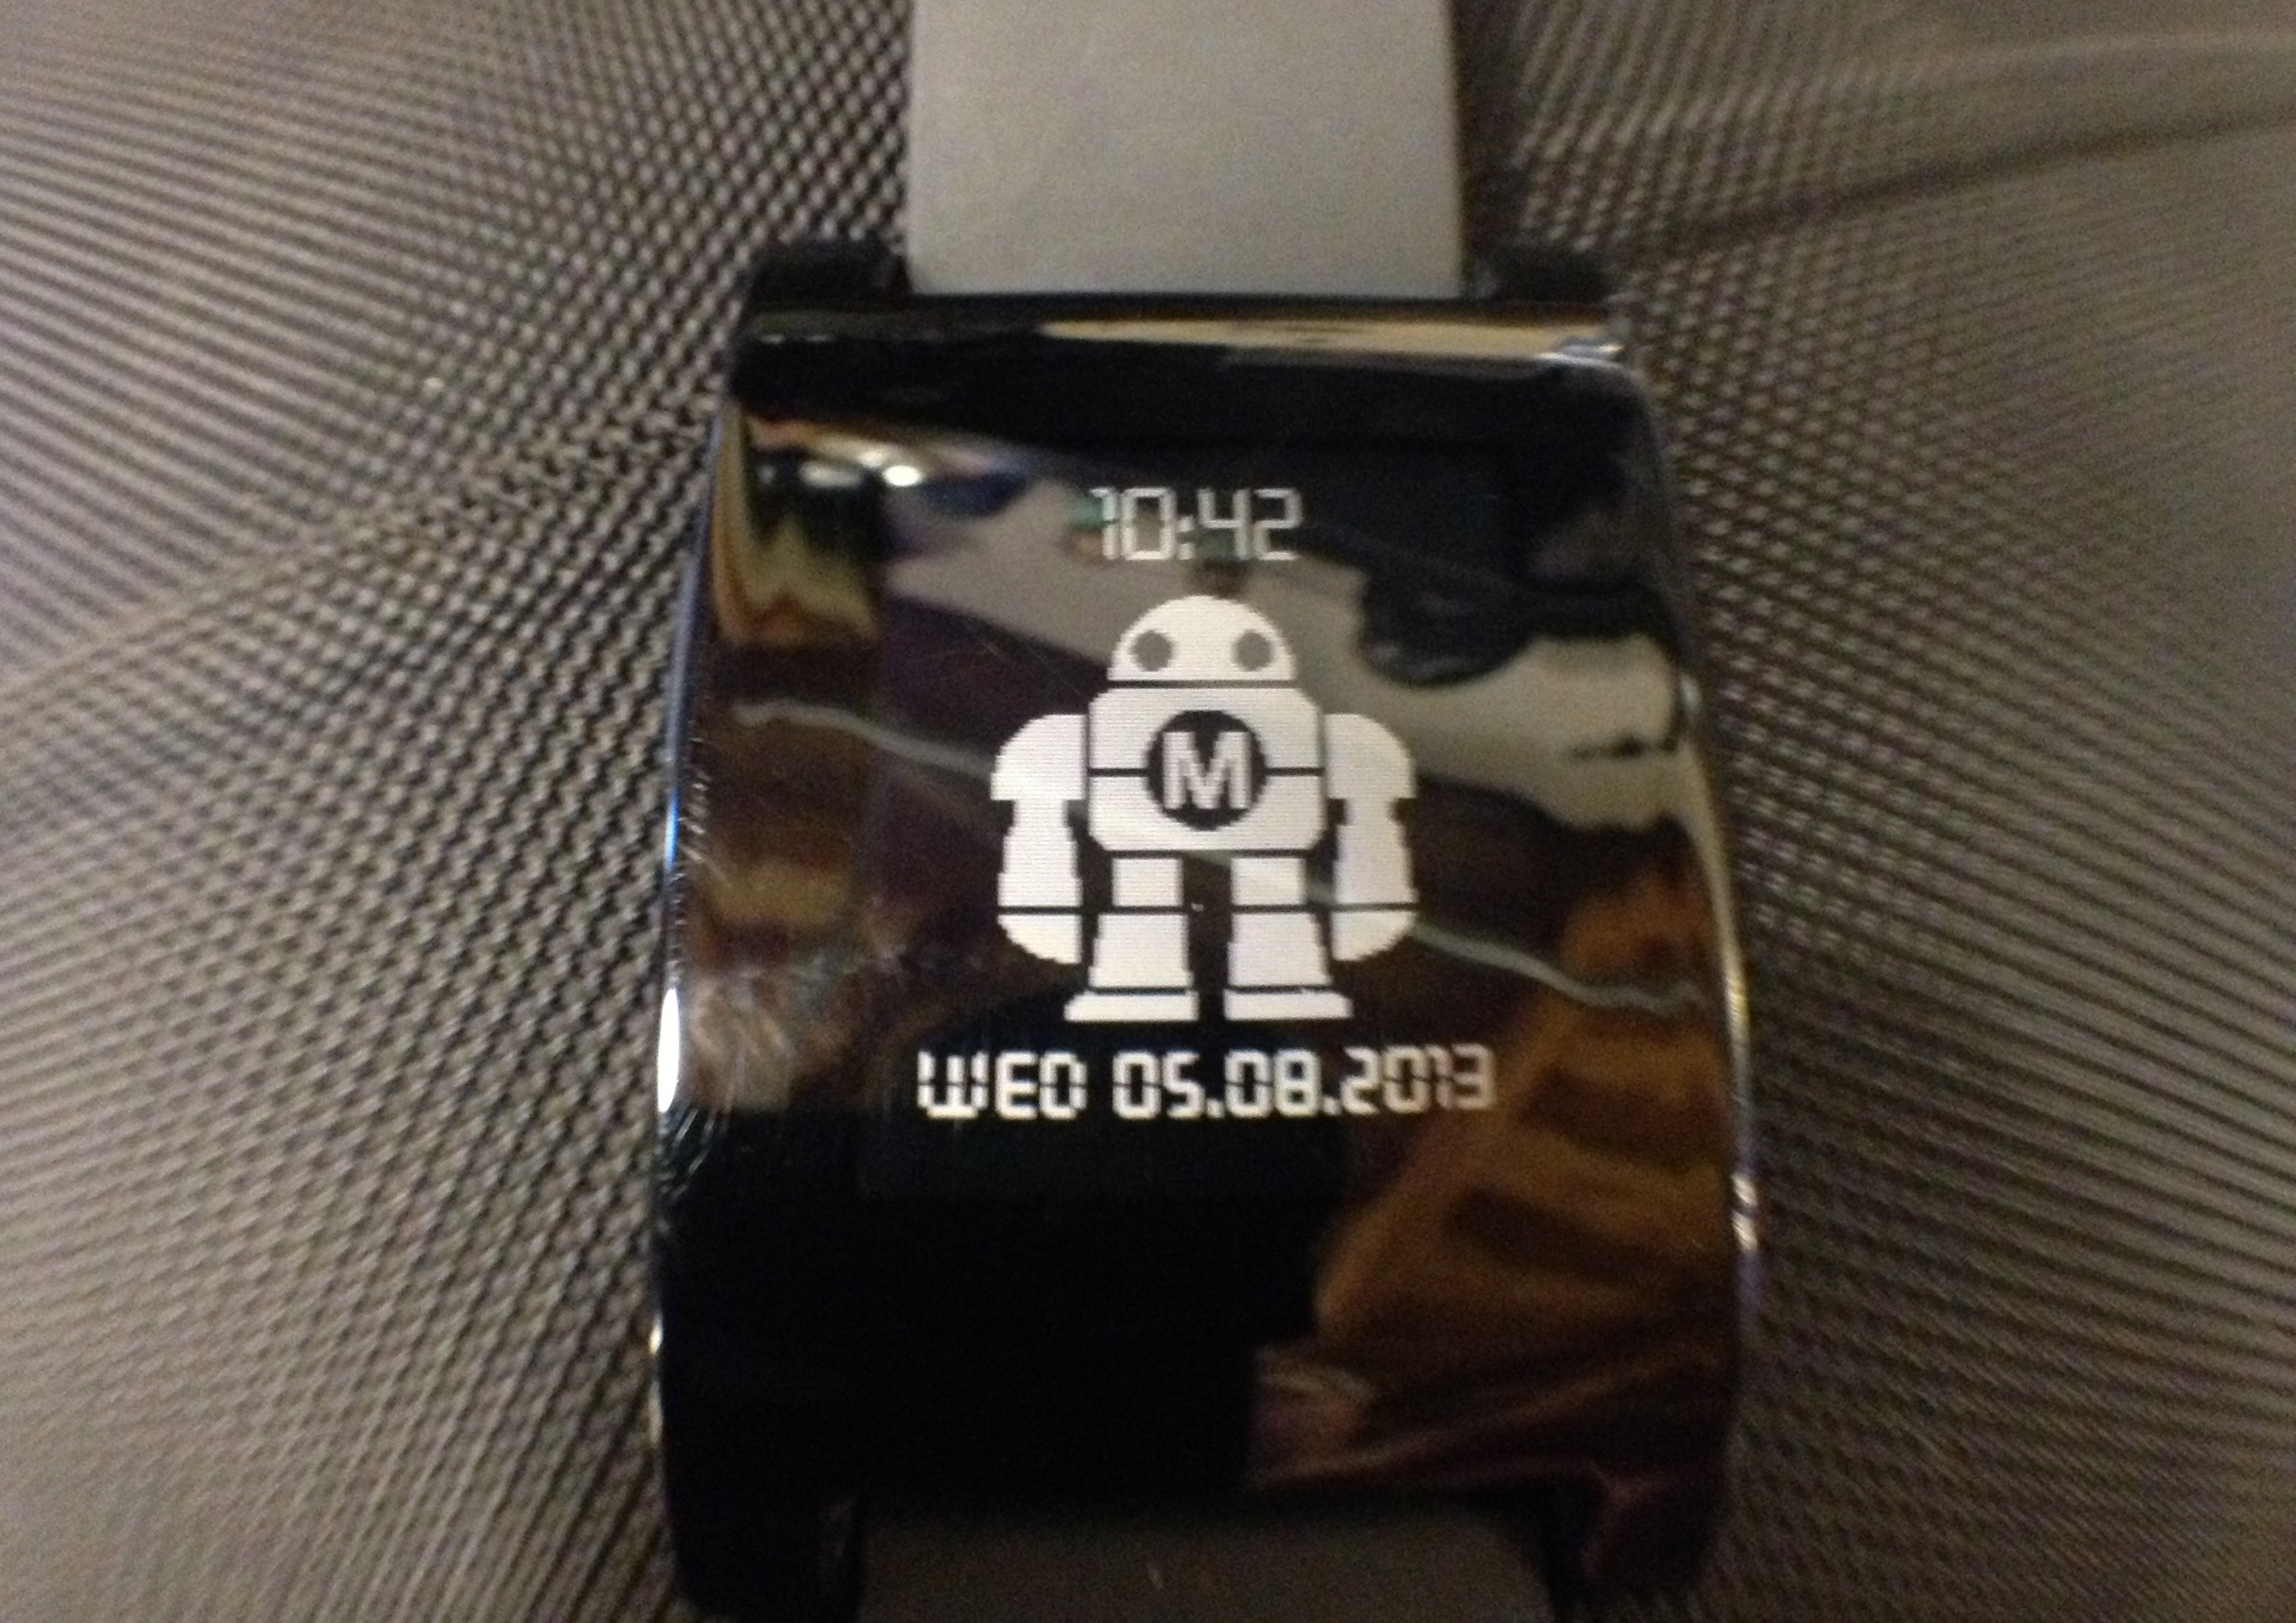 Get Your MAKE Pebble Watchface Just in Time for Maker Faire